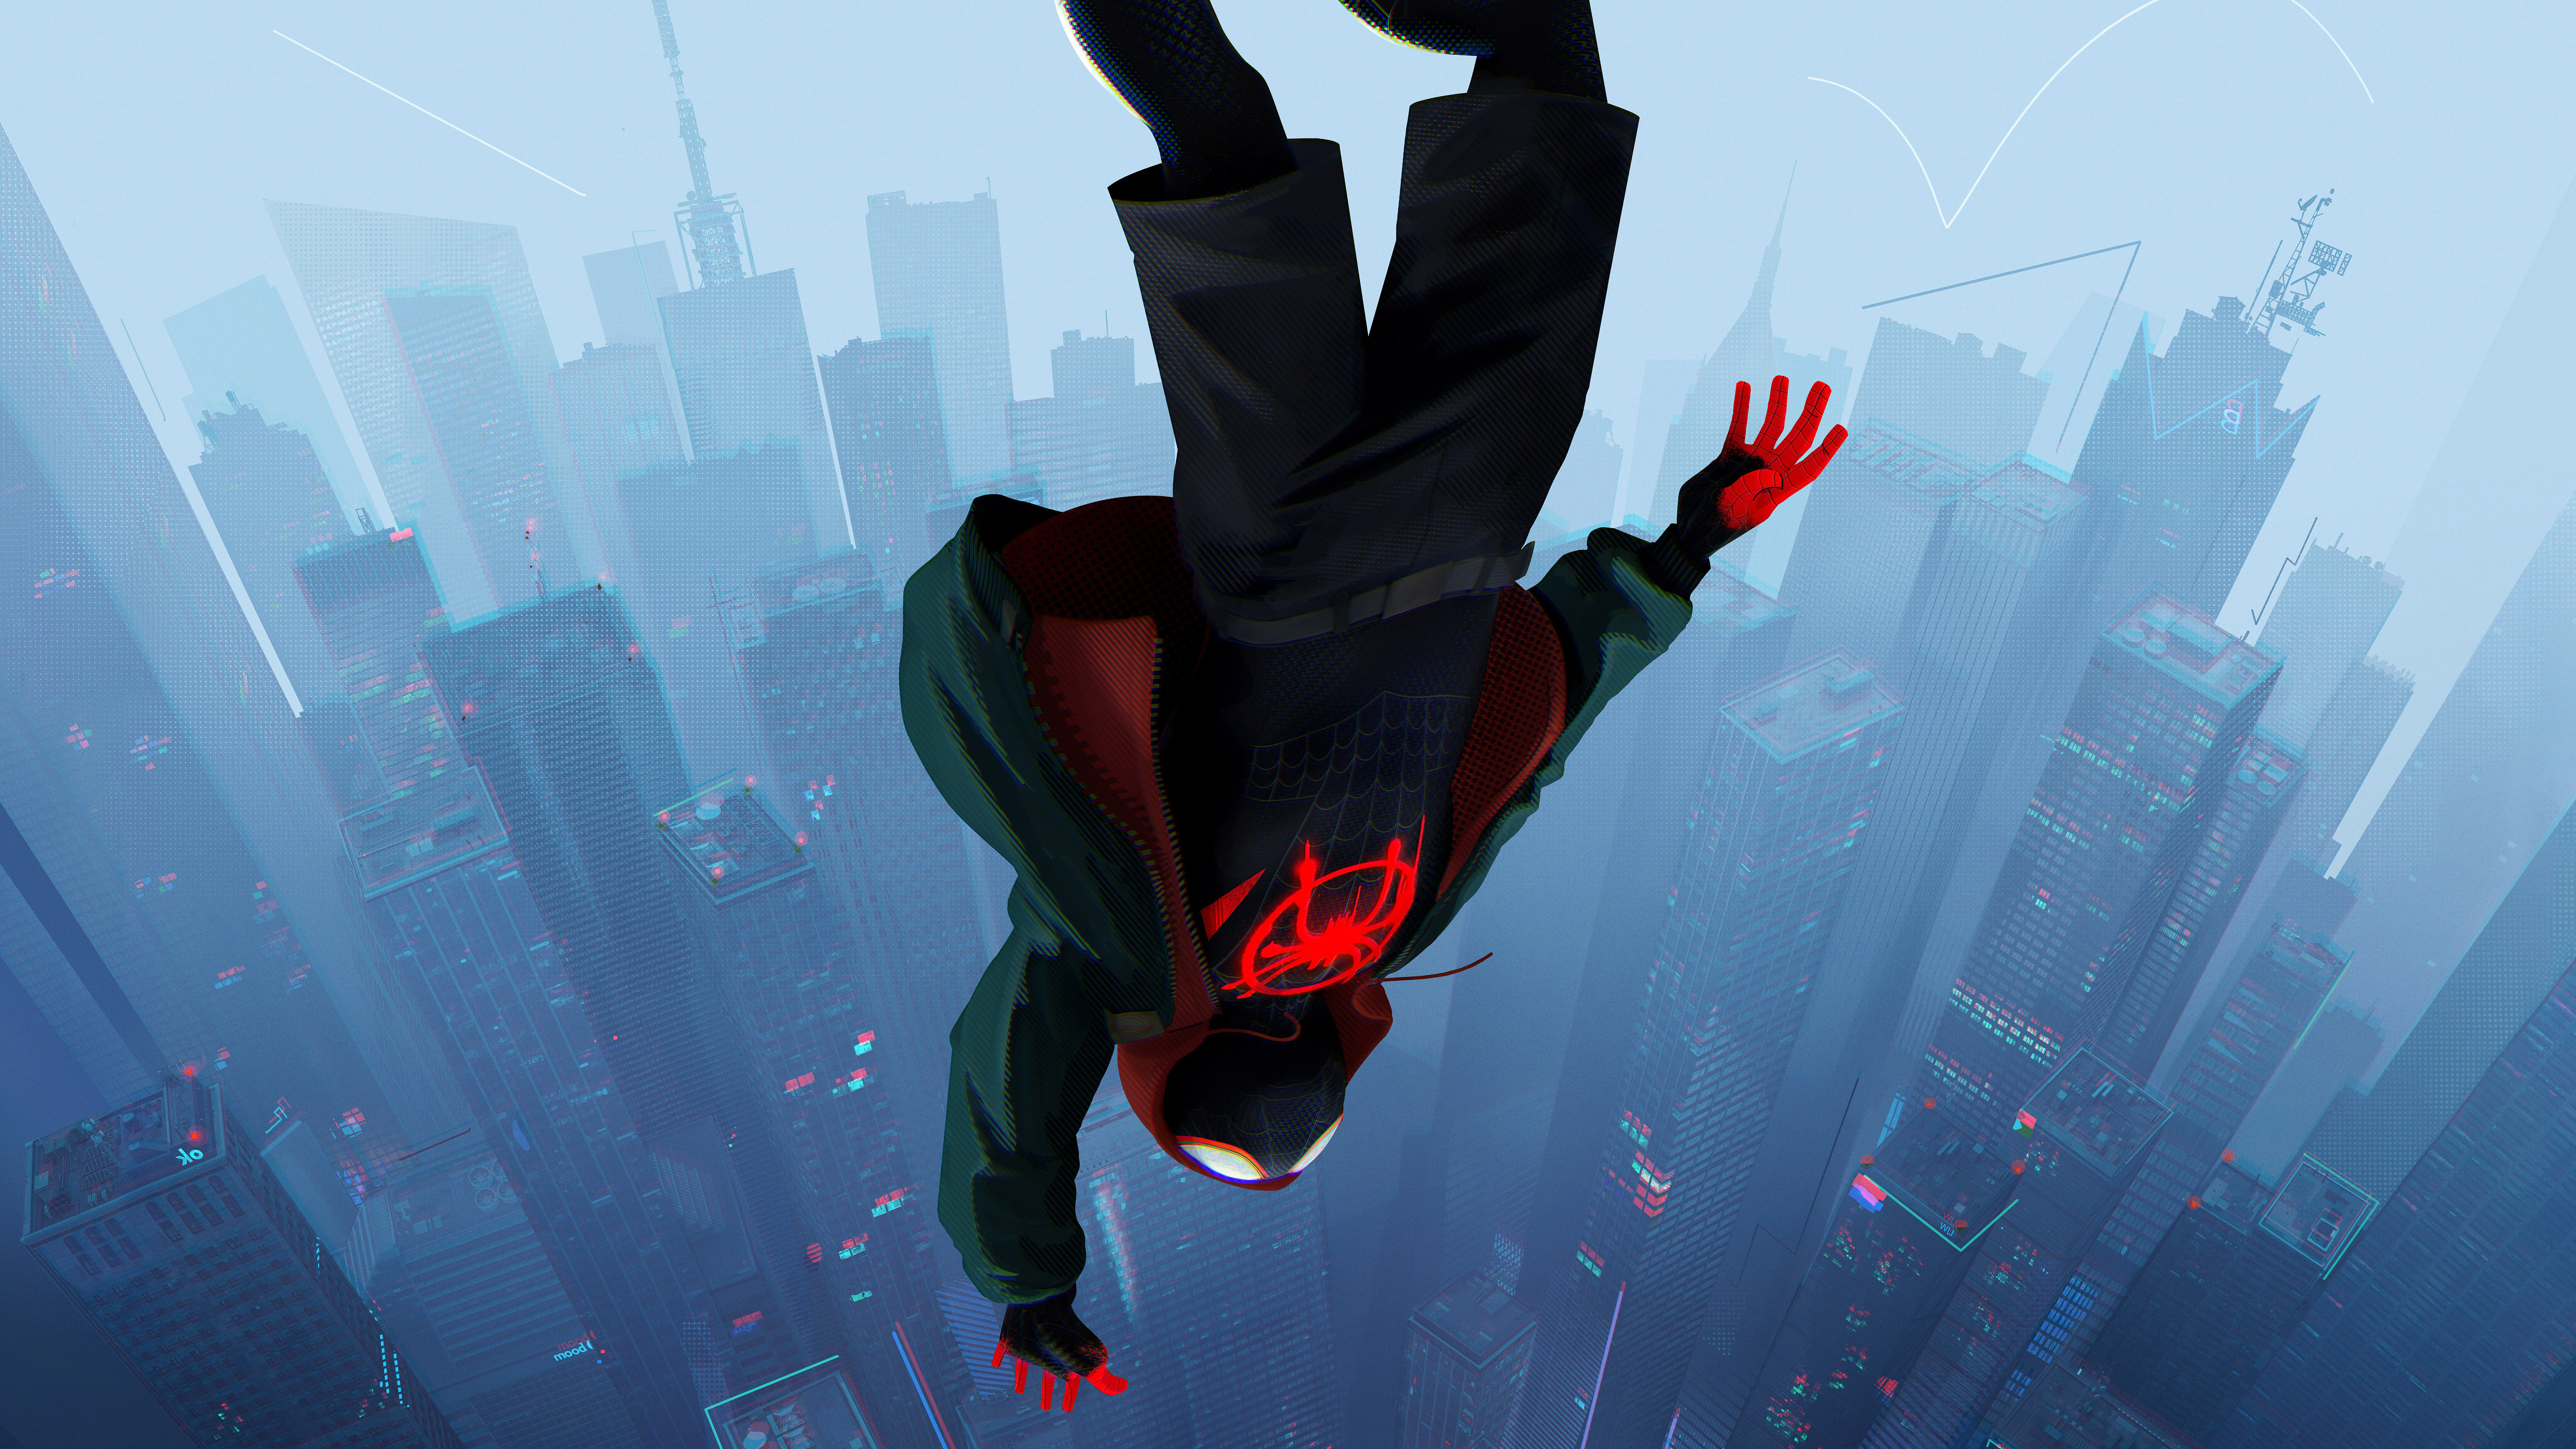 Into The Spider Verse X Wallpaper Iwallpaper: 1280x1024 SpiderMan Into The Spider Verse Movie 2018 8k